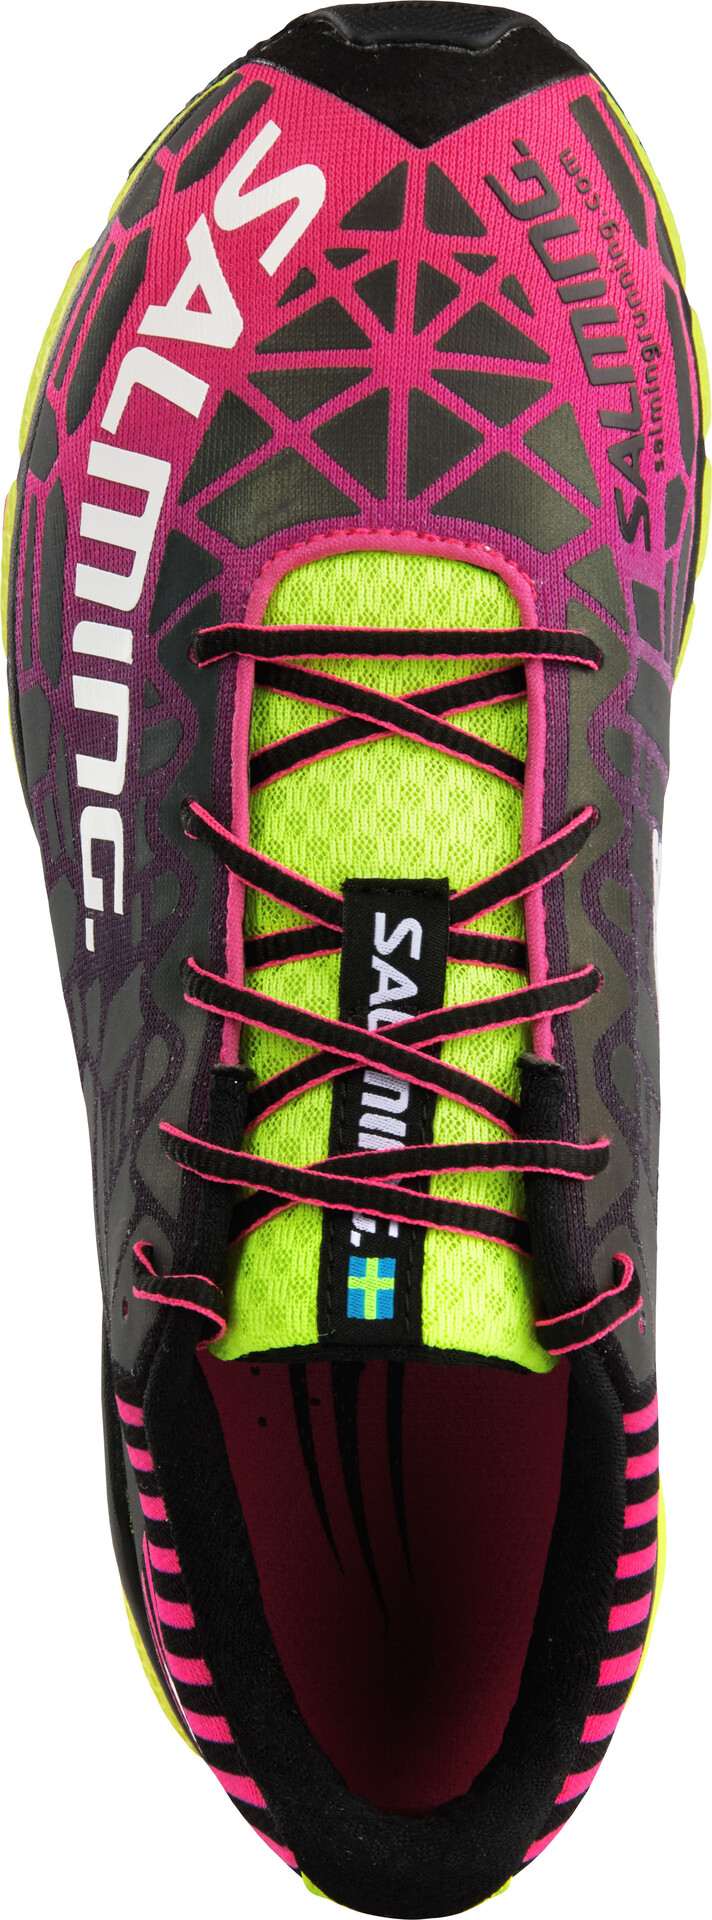 Salming W's Speed 6 6 6 Shoes Fluo Sosa/Flou Gul e64d66